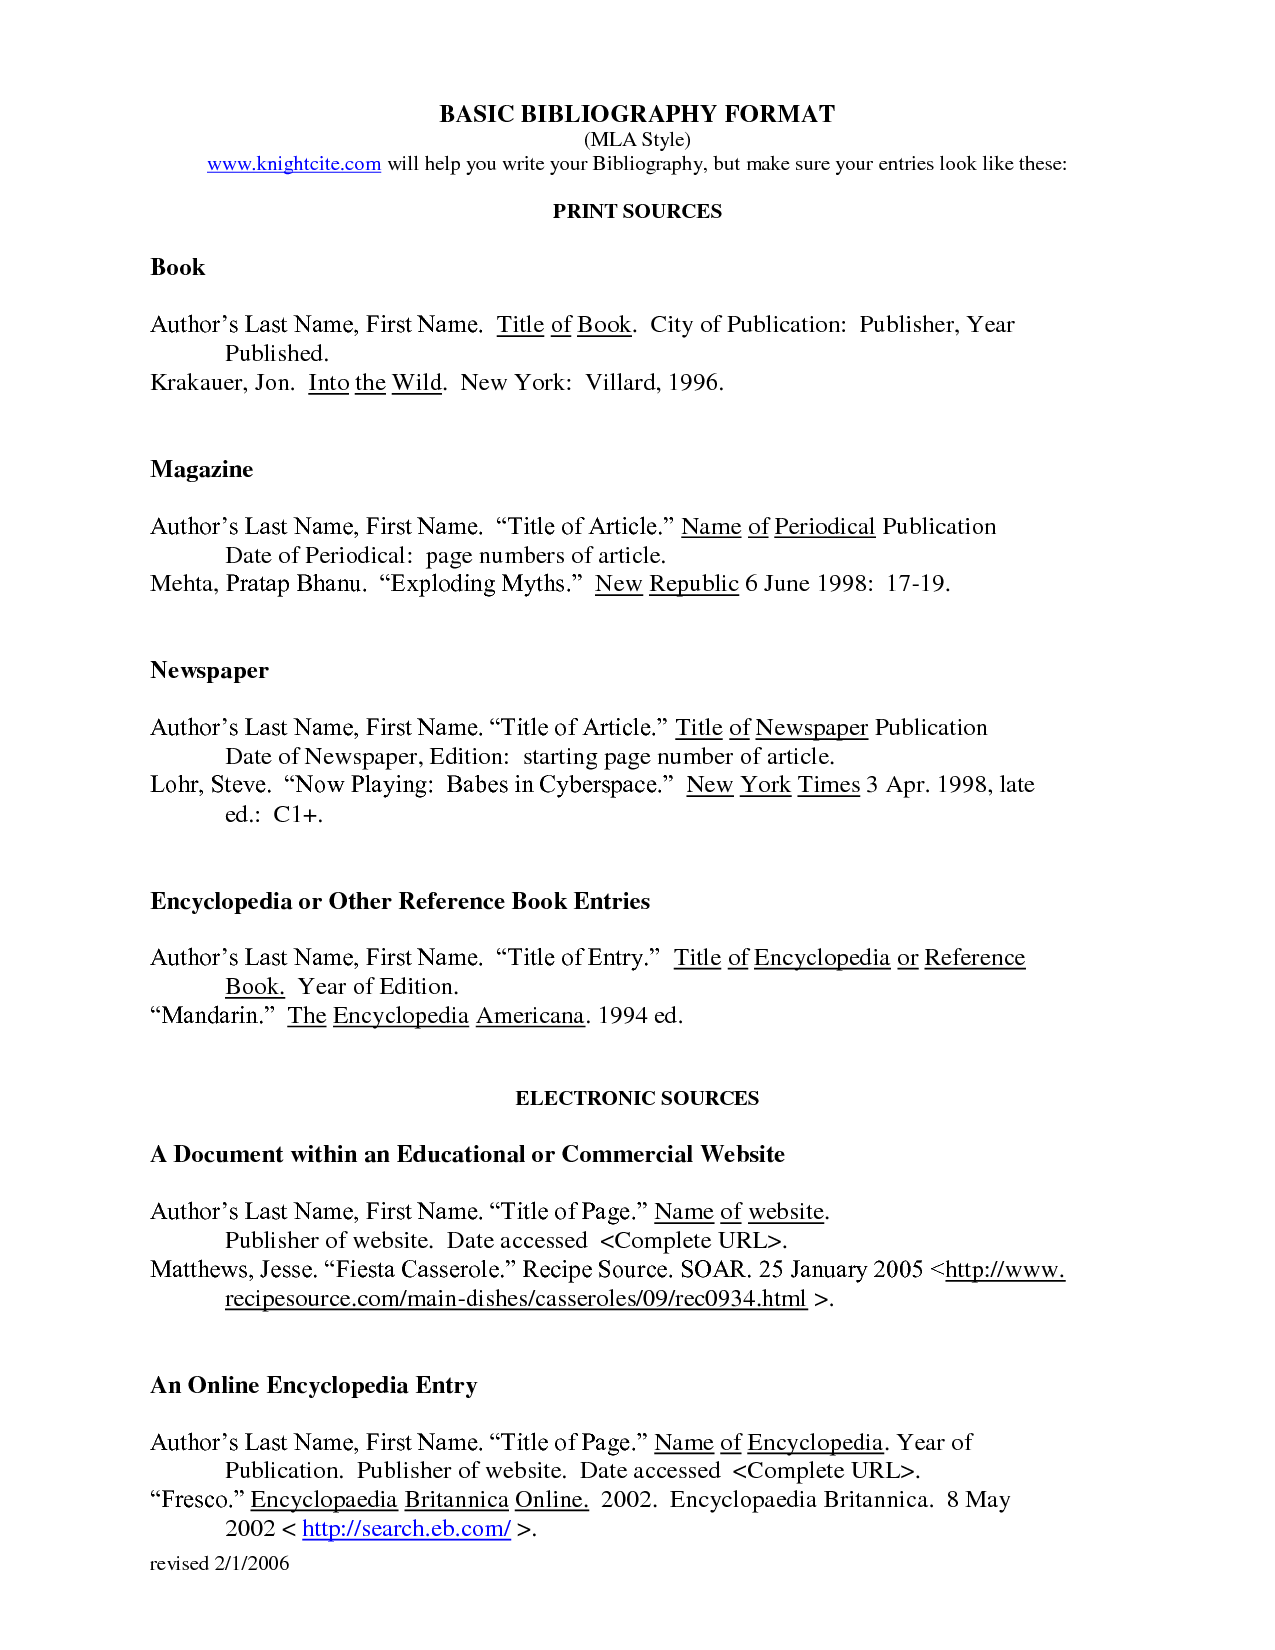 001 Research Paper Work Cited Page Excellent For Bibliography Citation Full